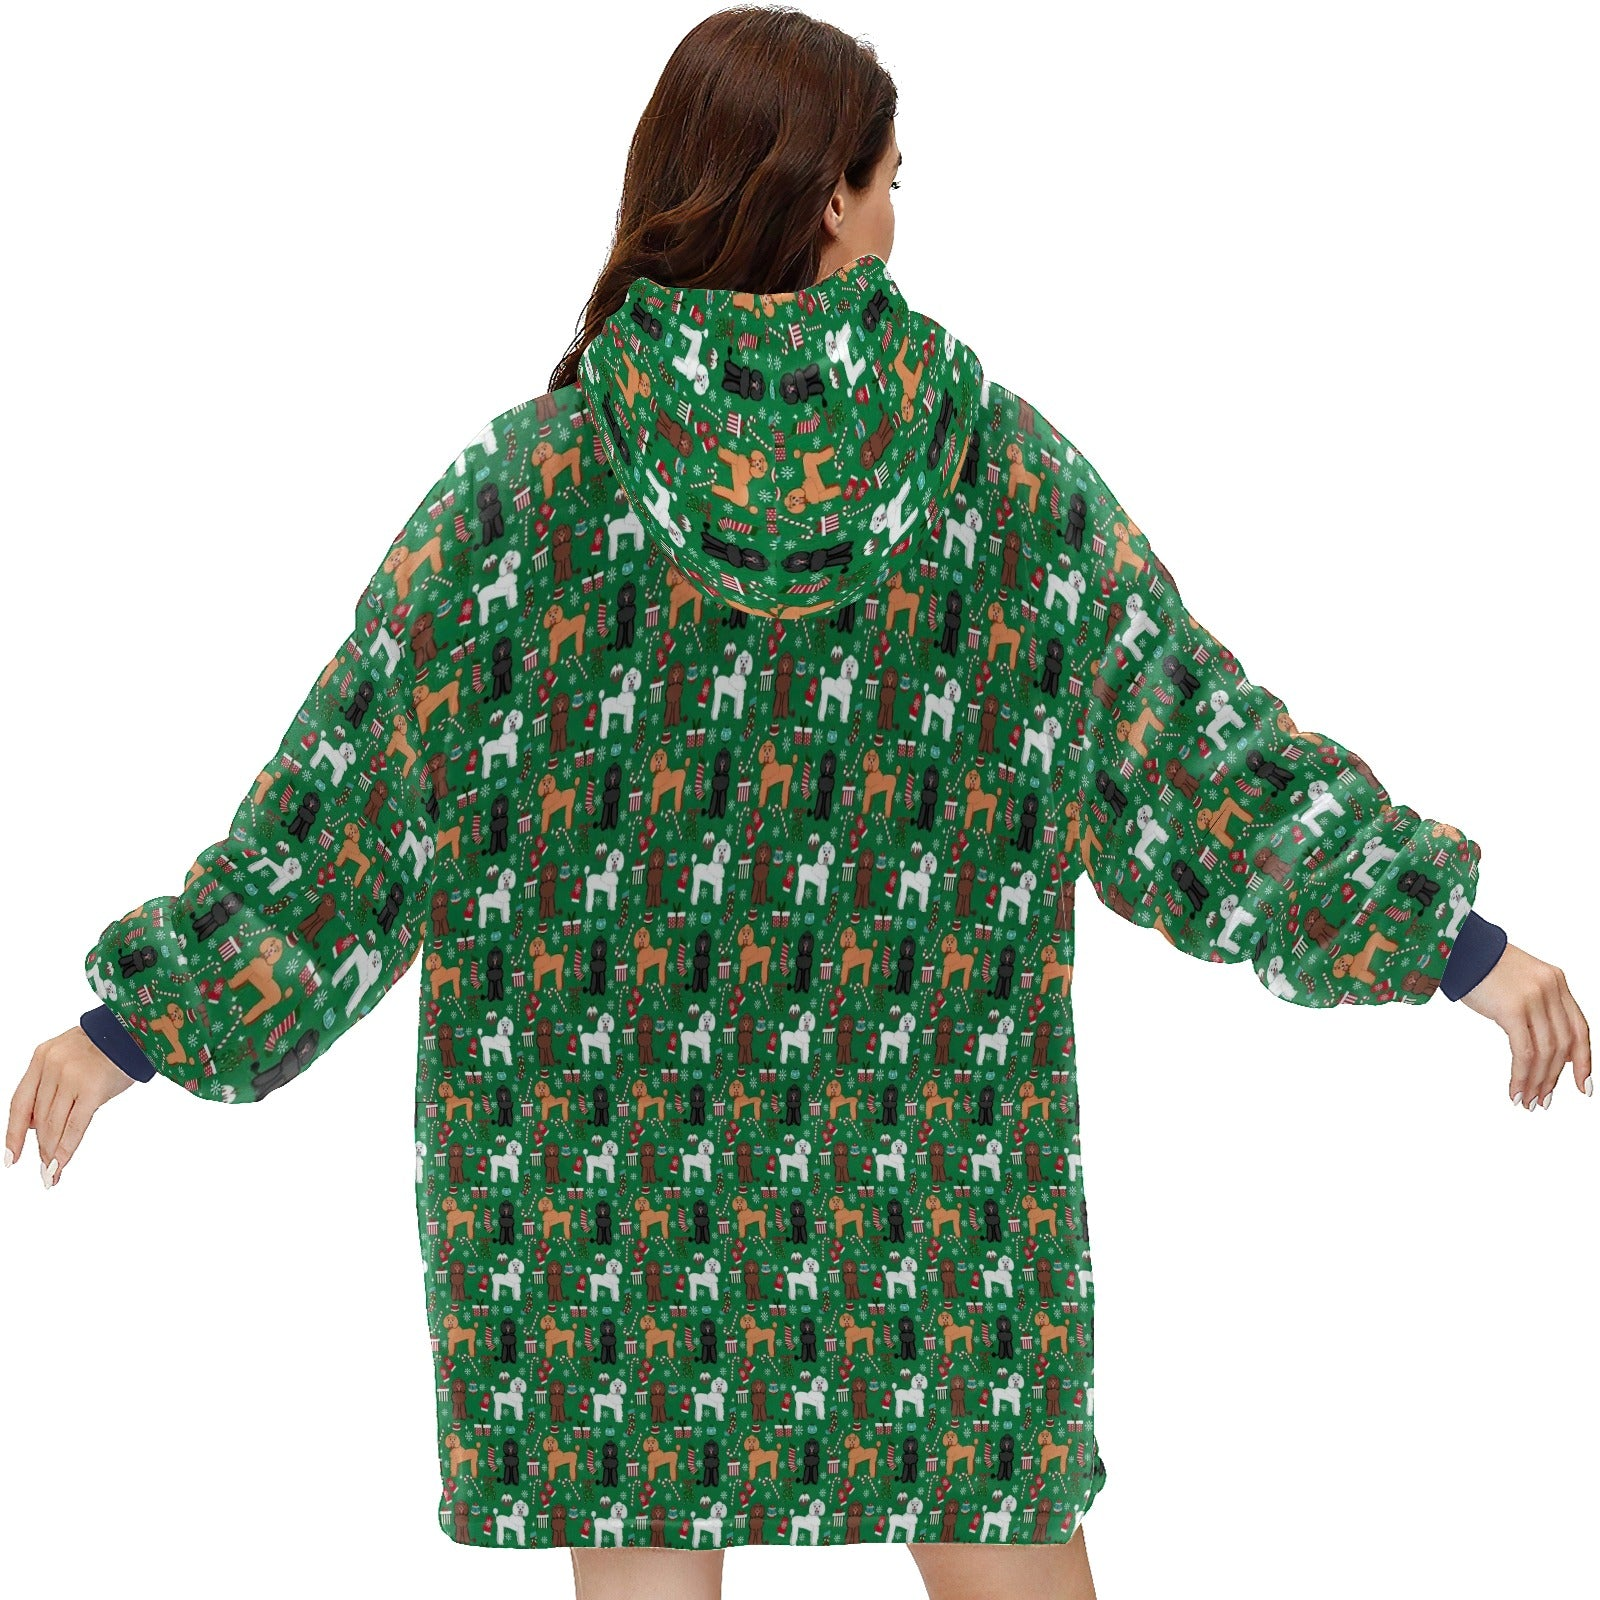 Poodle Dog Christmas Holiday  Hoodie Blanket Sweatshirt